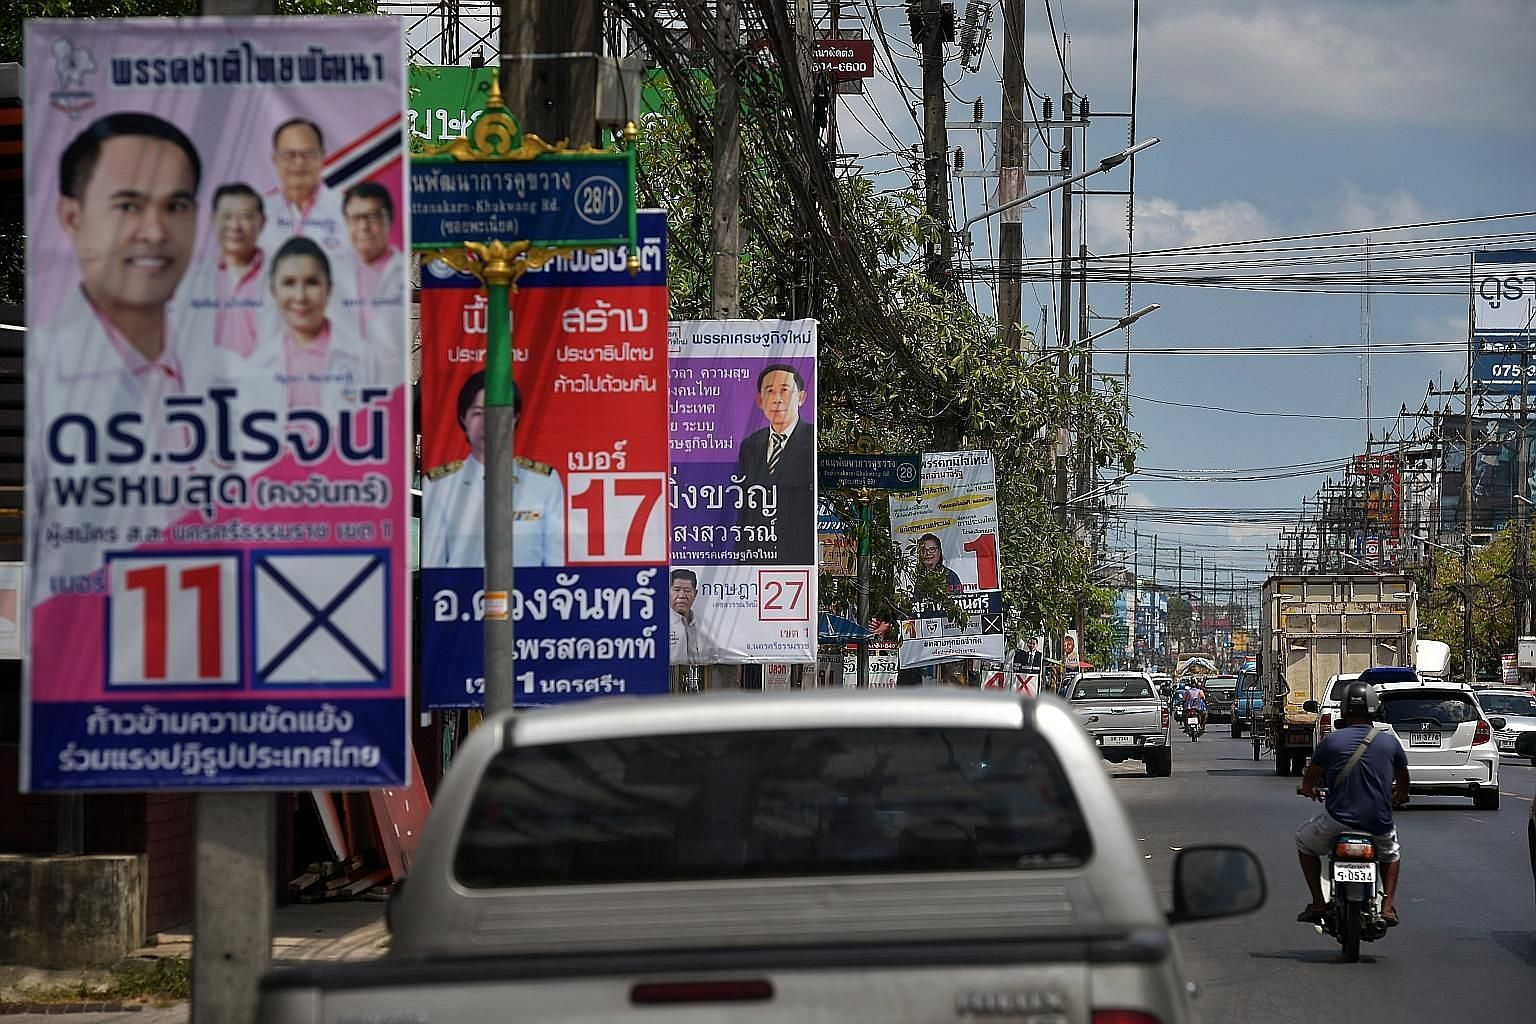 Election posters put up along the streets of Nakhon Si Thammarat, southern Thailand, ahead of the polls this Sunday. The general election is set to see an exceptionally high voter turnout, higher than the 75 per cent in the 2011 general election, bec